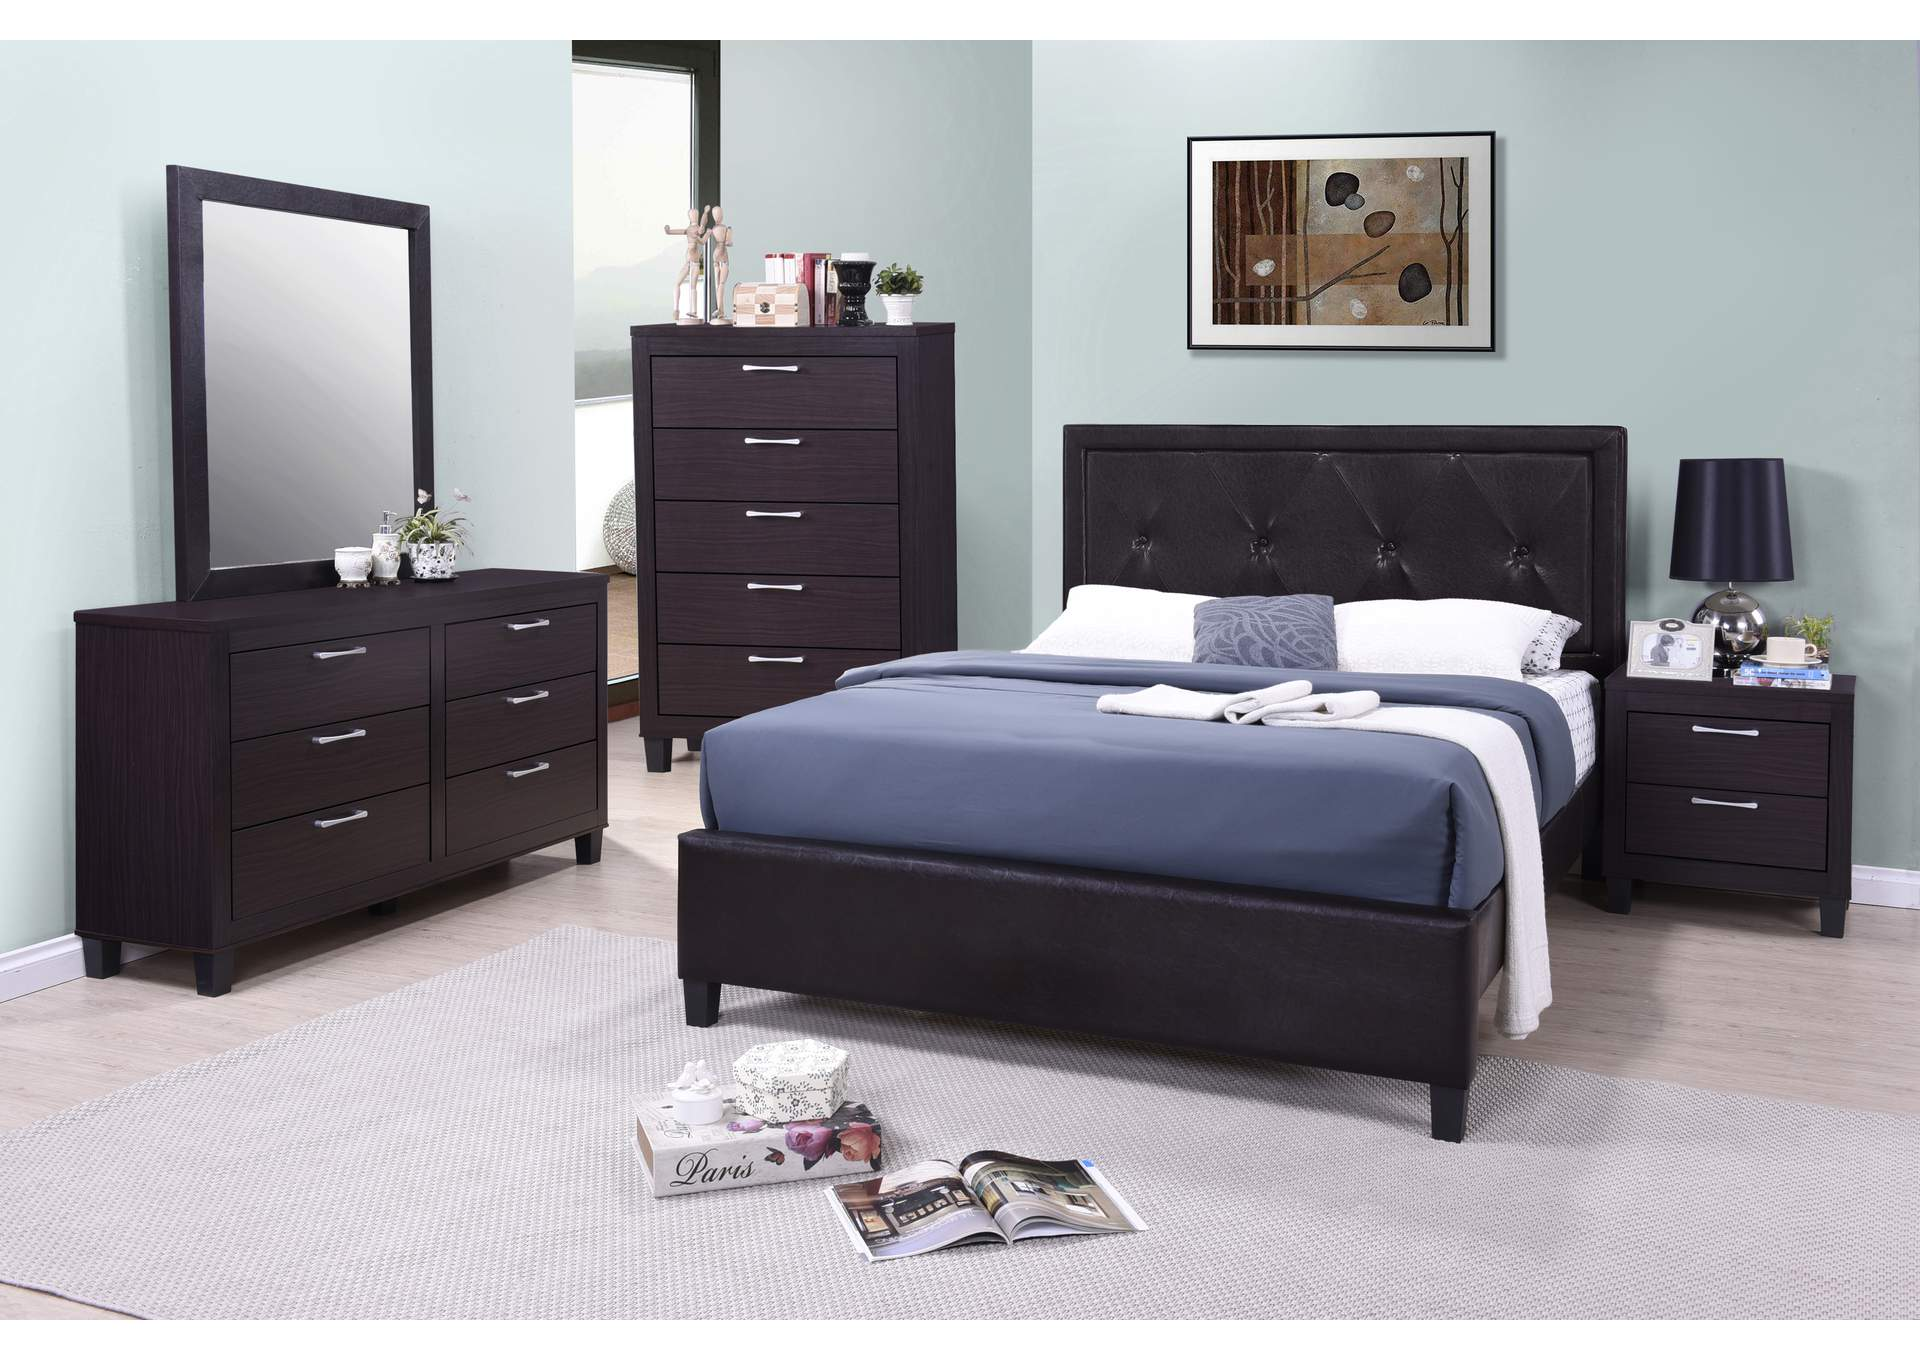 Tripton Dark Grey Panel Queen 4 Piece Bedroom Set W/ Chest, Dresser & Mirror,Global Trading